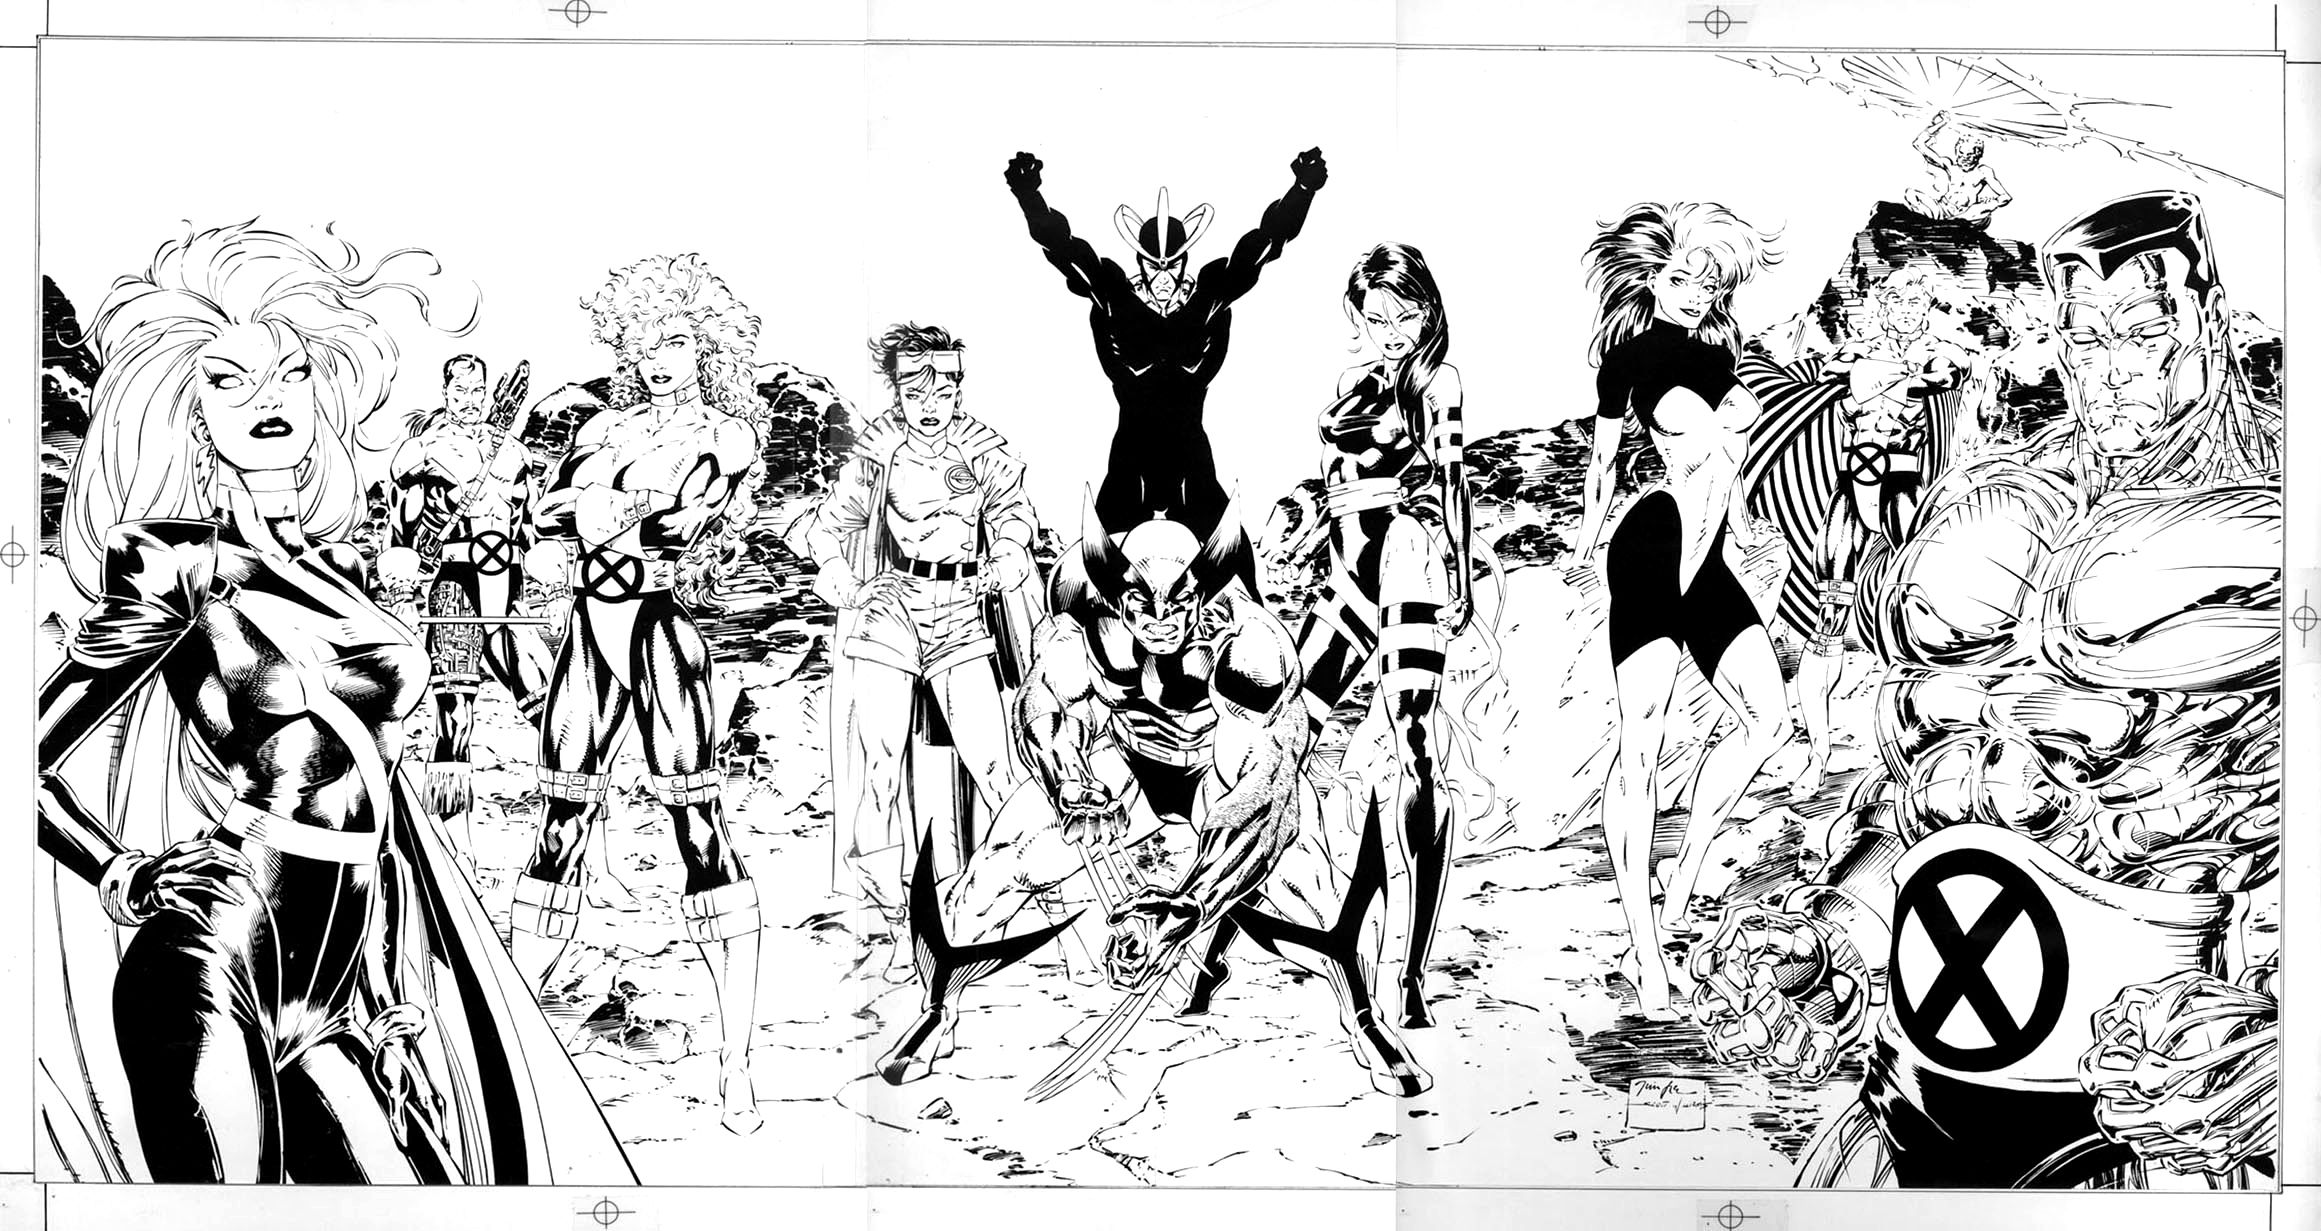 x men triptych 1991 poster art parts 1 2 3 by jim lee X-Men Origins Wolverine x men triptych 1991 poster art parts 1 2 3 by jim lee scott wiiliams in michael bair s ics production art